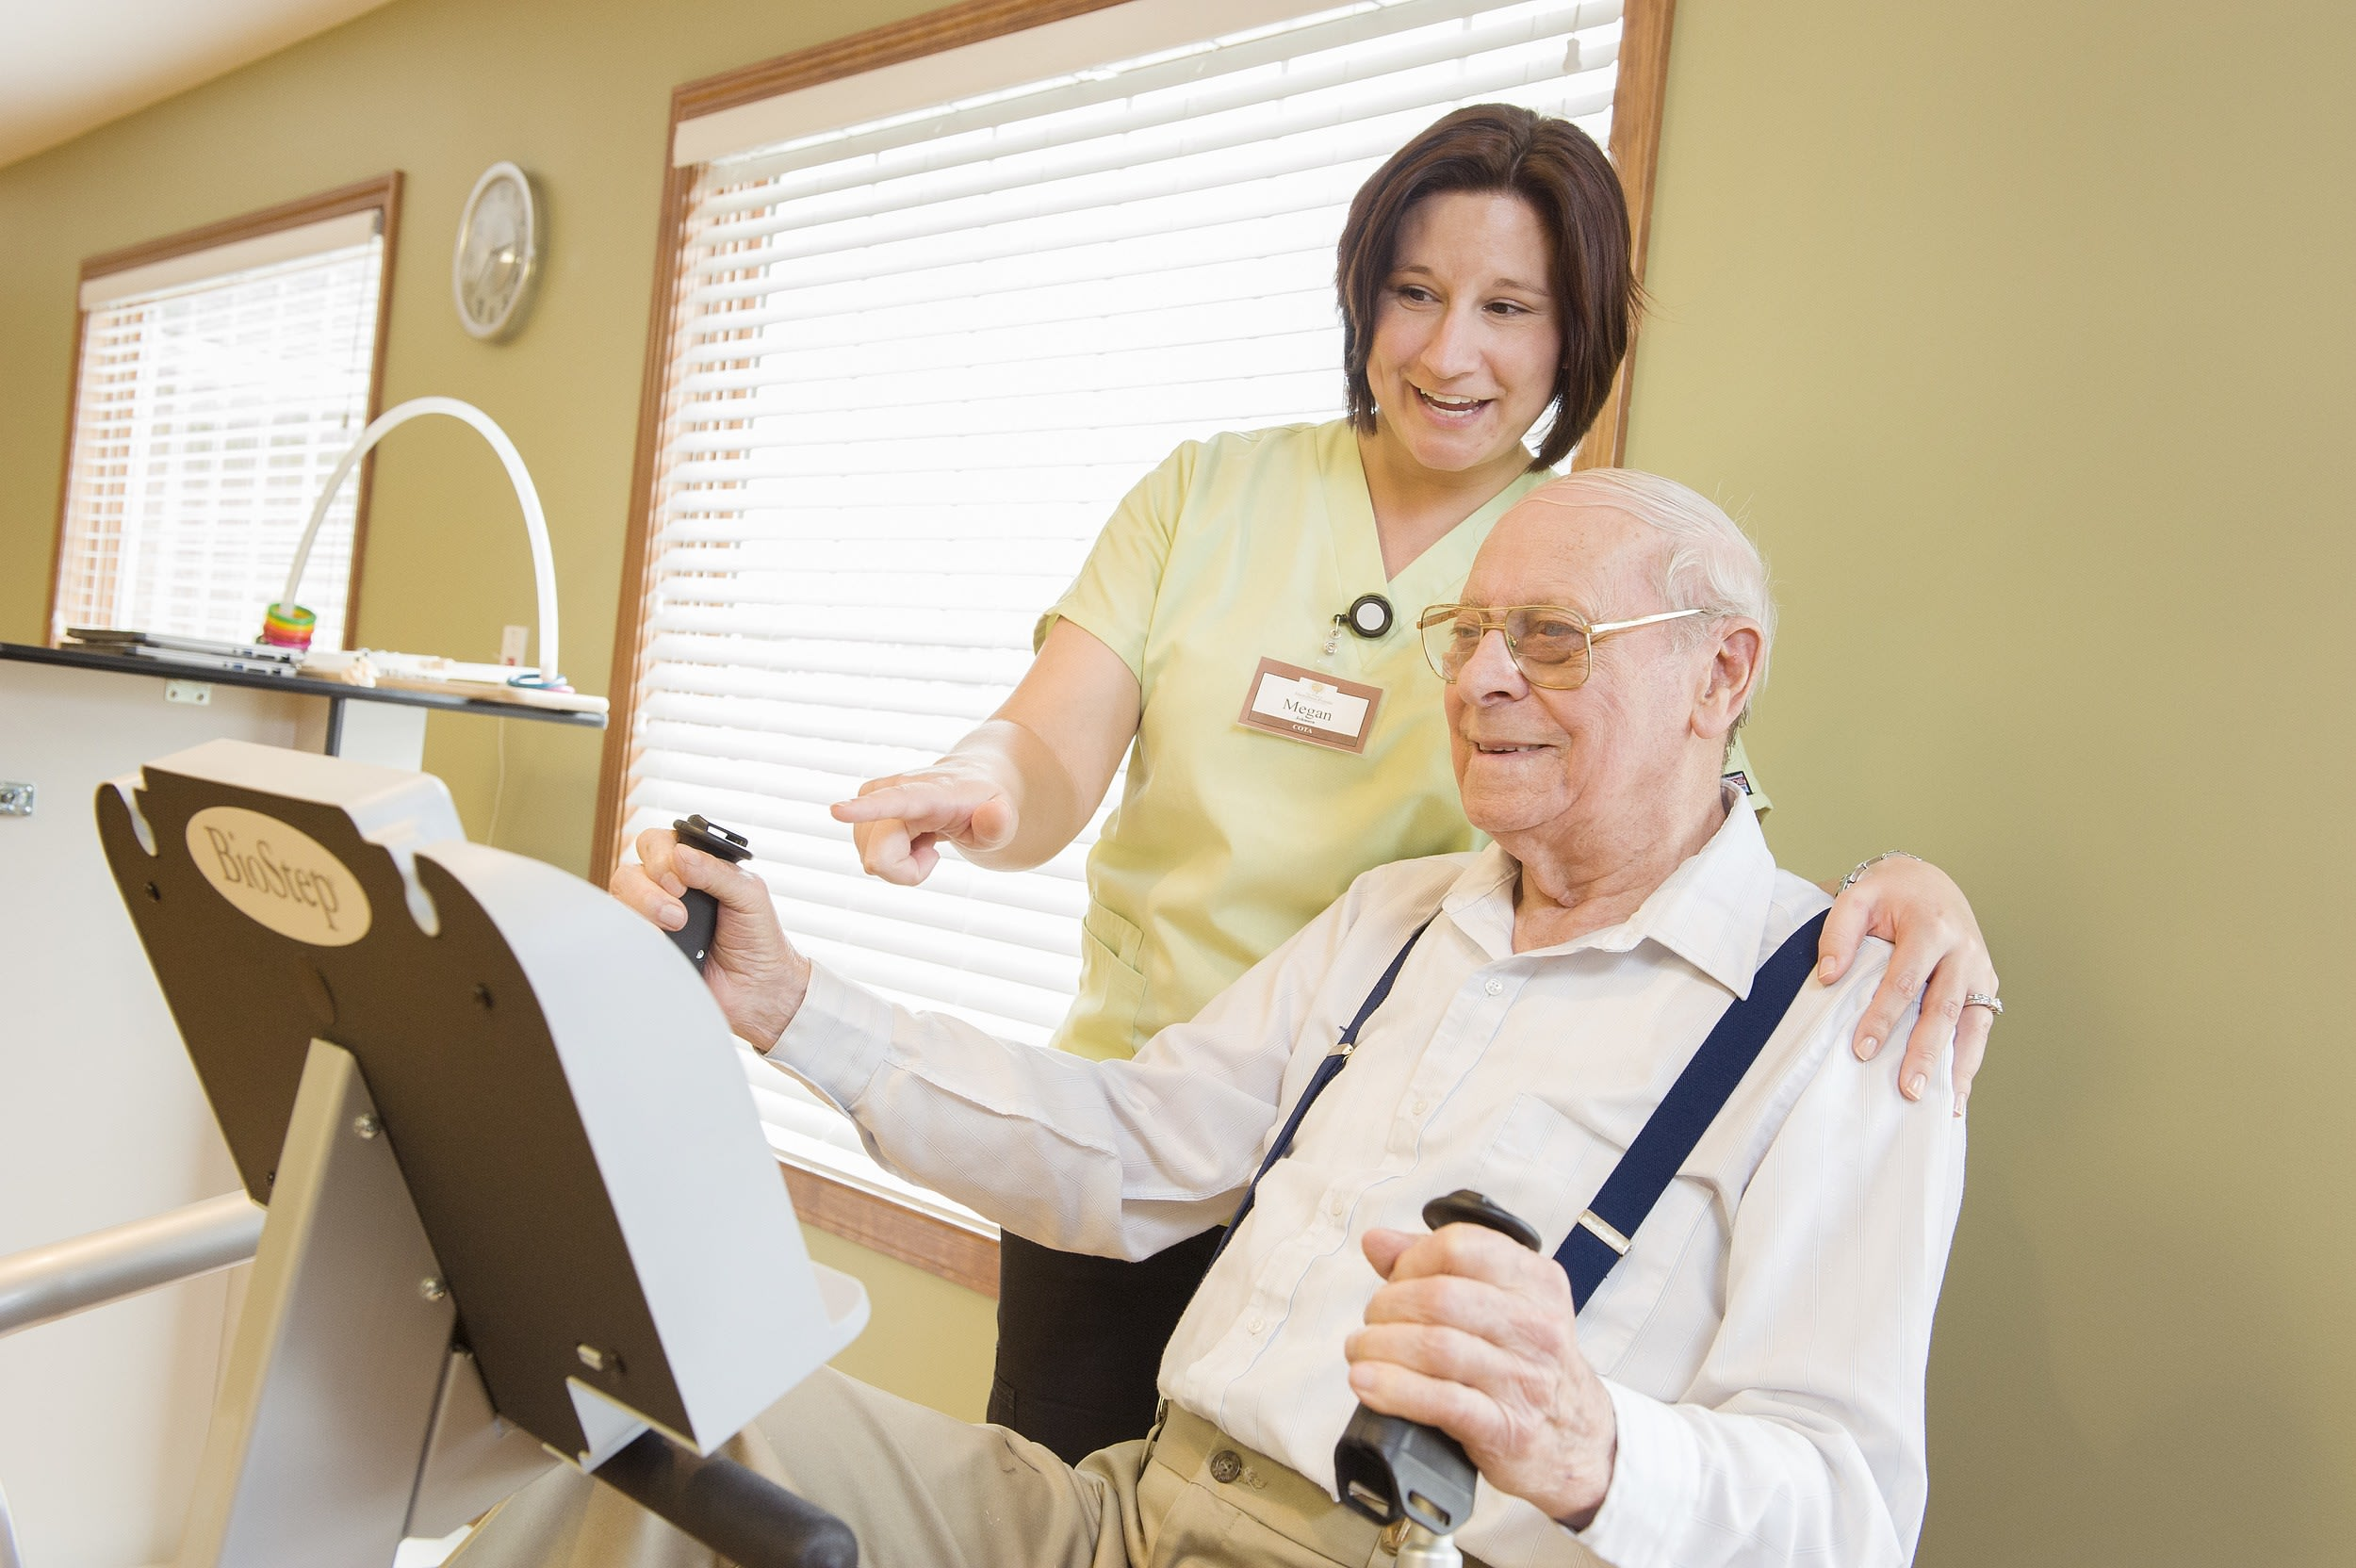 Physical therapy rehab services at The Village at Hamilton Pointe